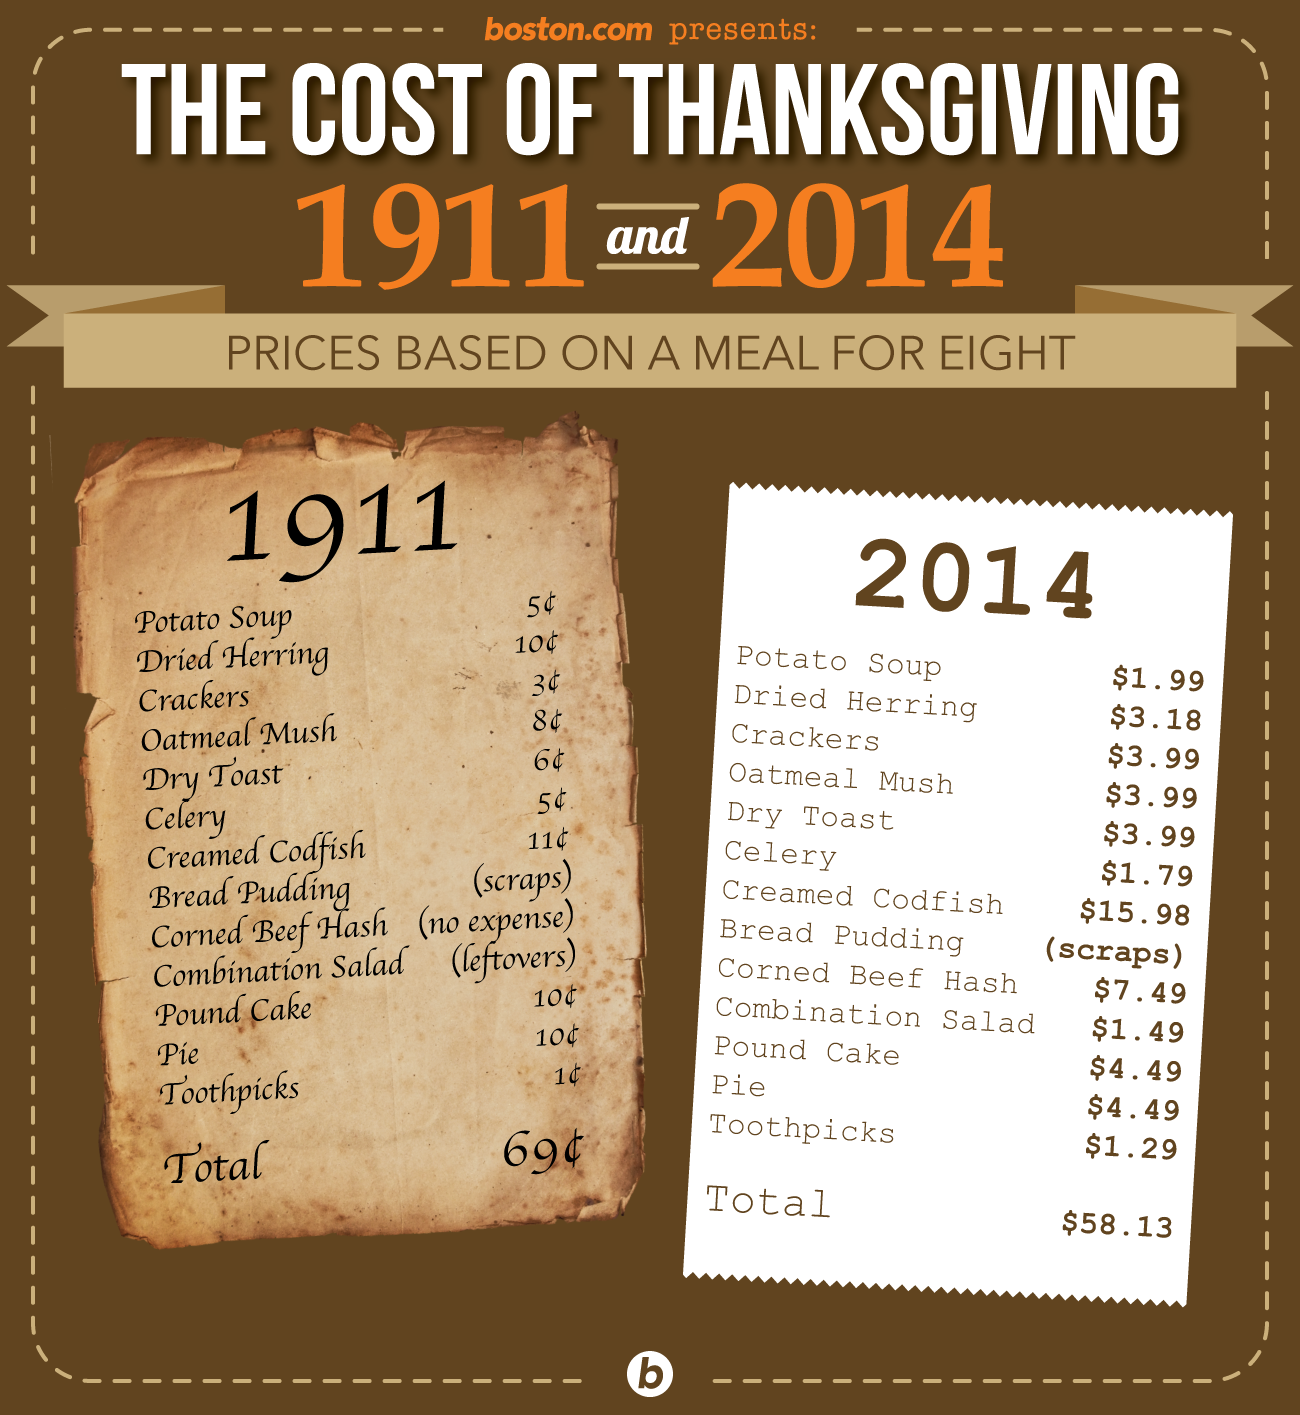 In 1911, A Frugal Thanksgiving Meal Cost 69 Cents. What